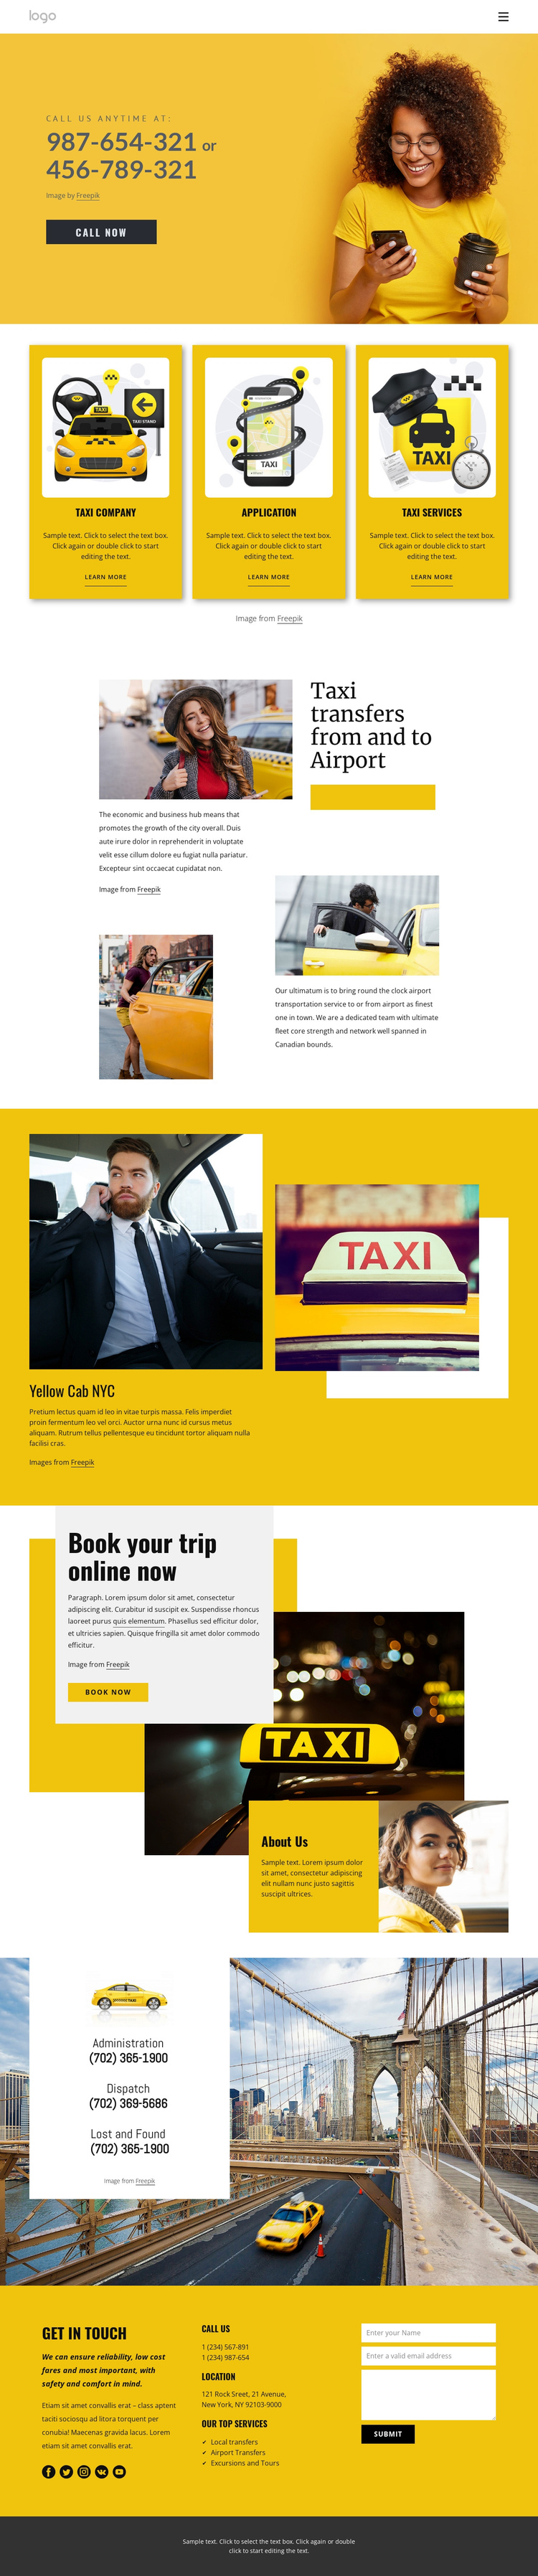 Quality taxi service Website Builder Software